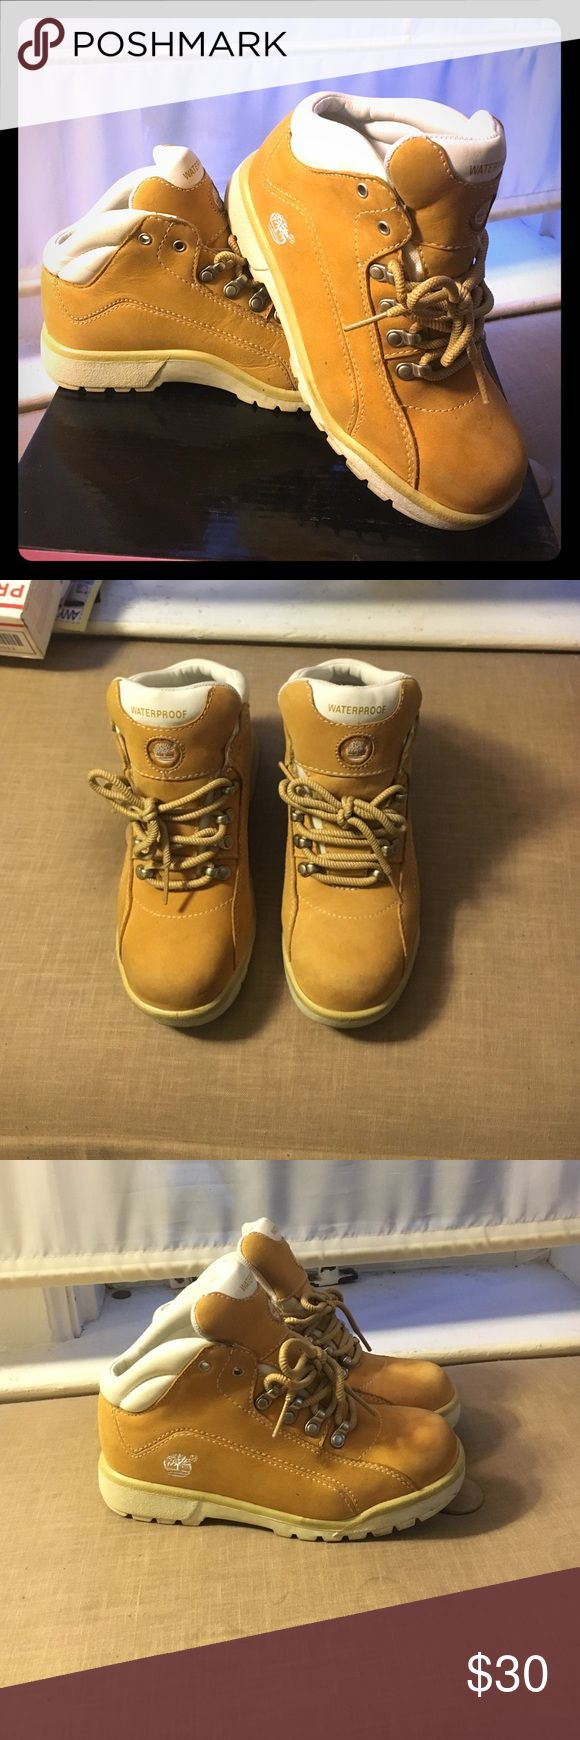 Waterproof, Timberland Boots for kids Tan and white, waterproof Timbaland boots; in great condition! Timberland Shoes Boots